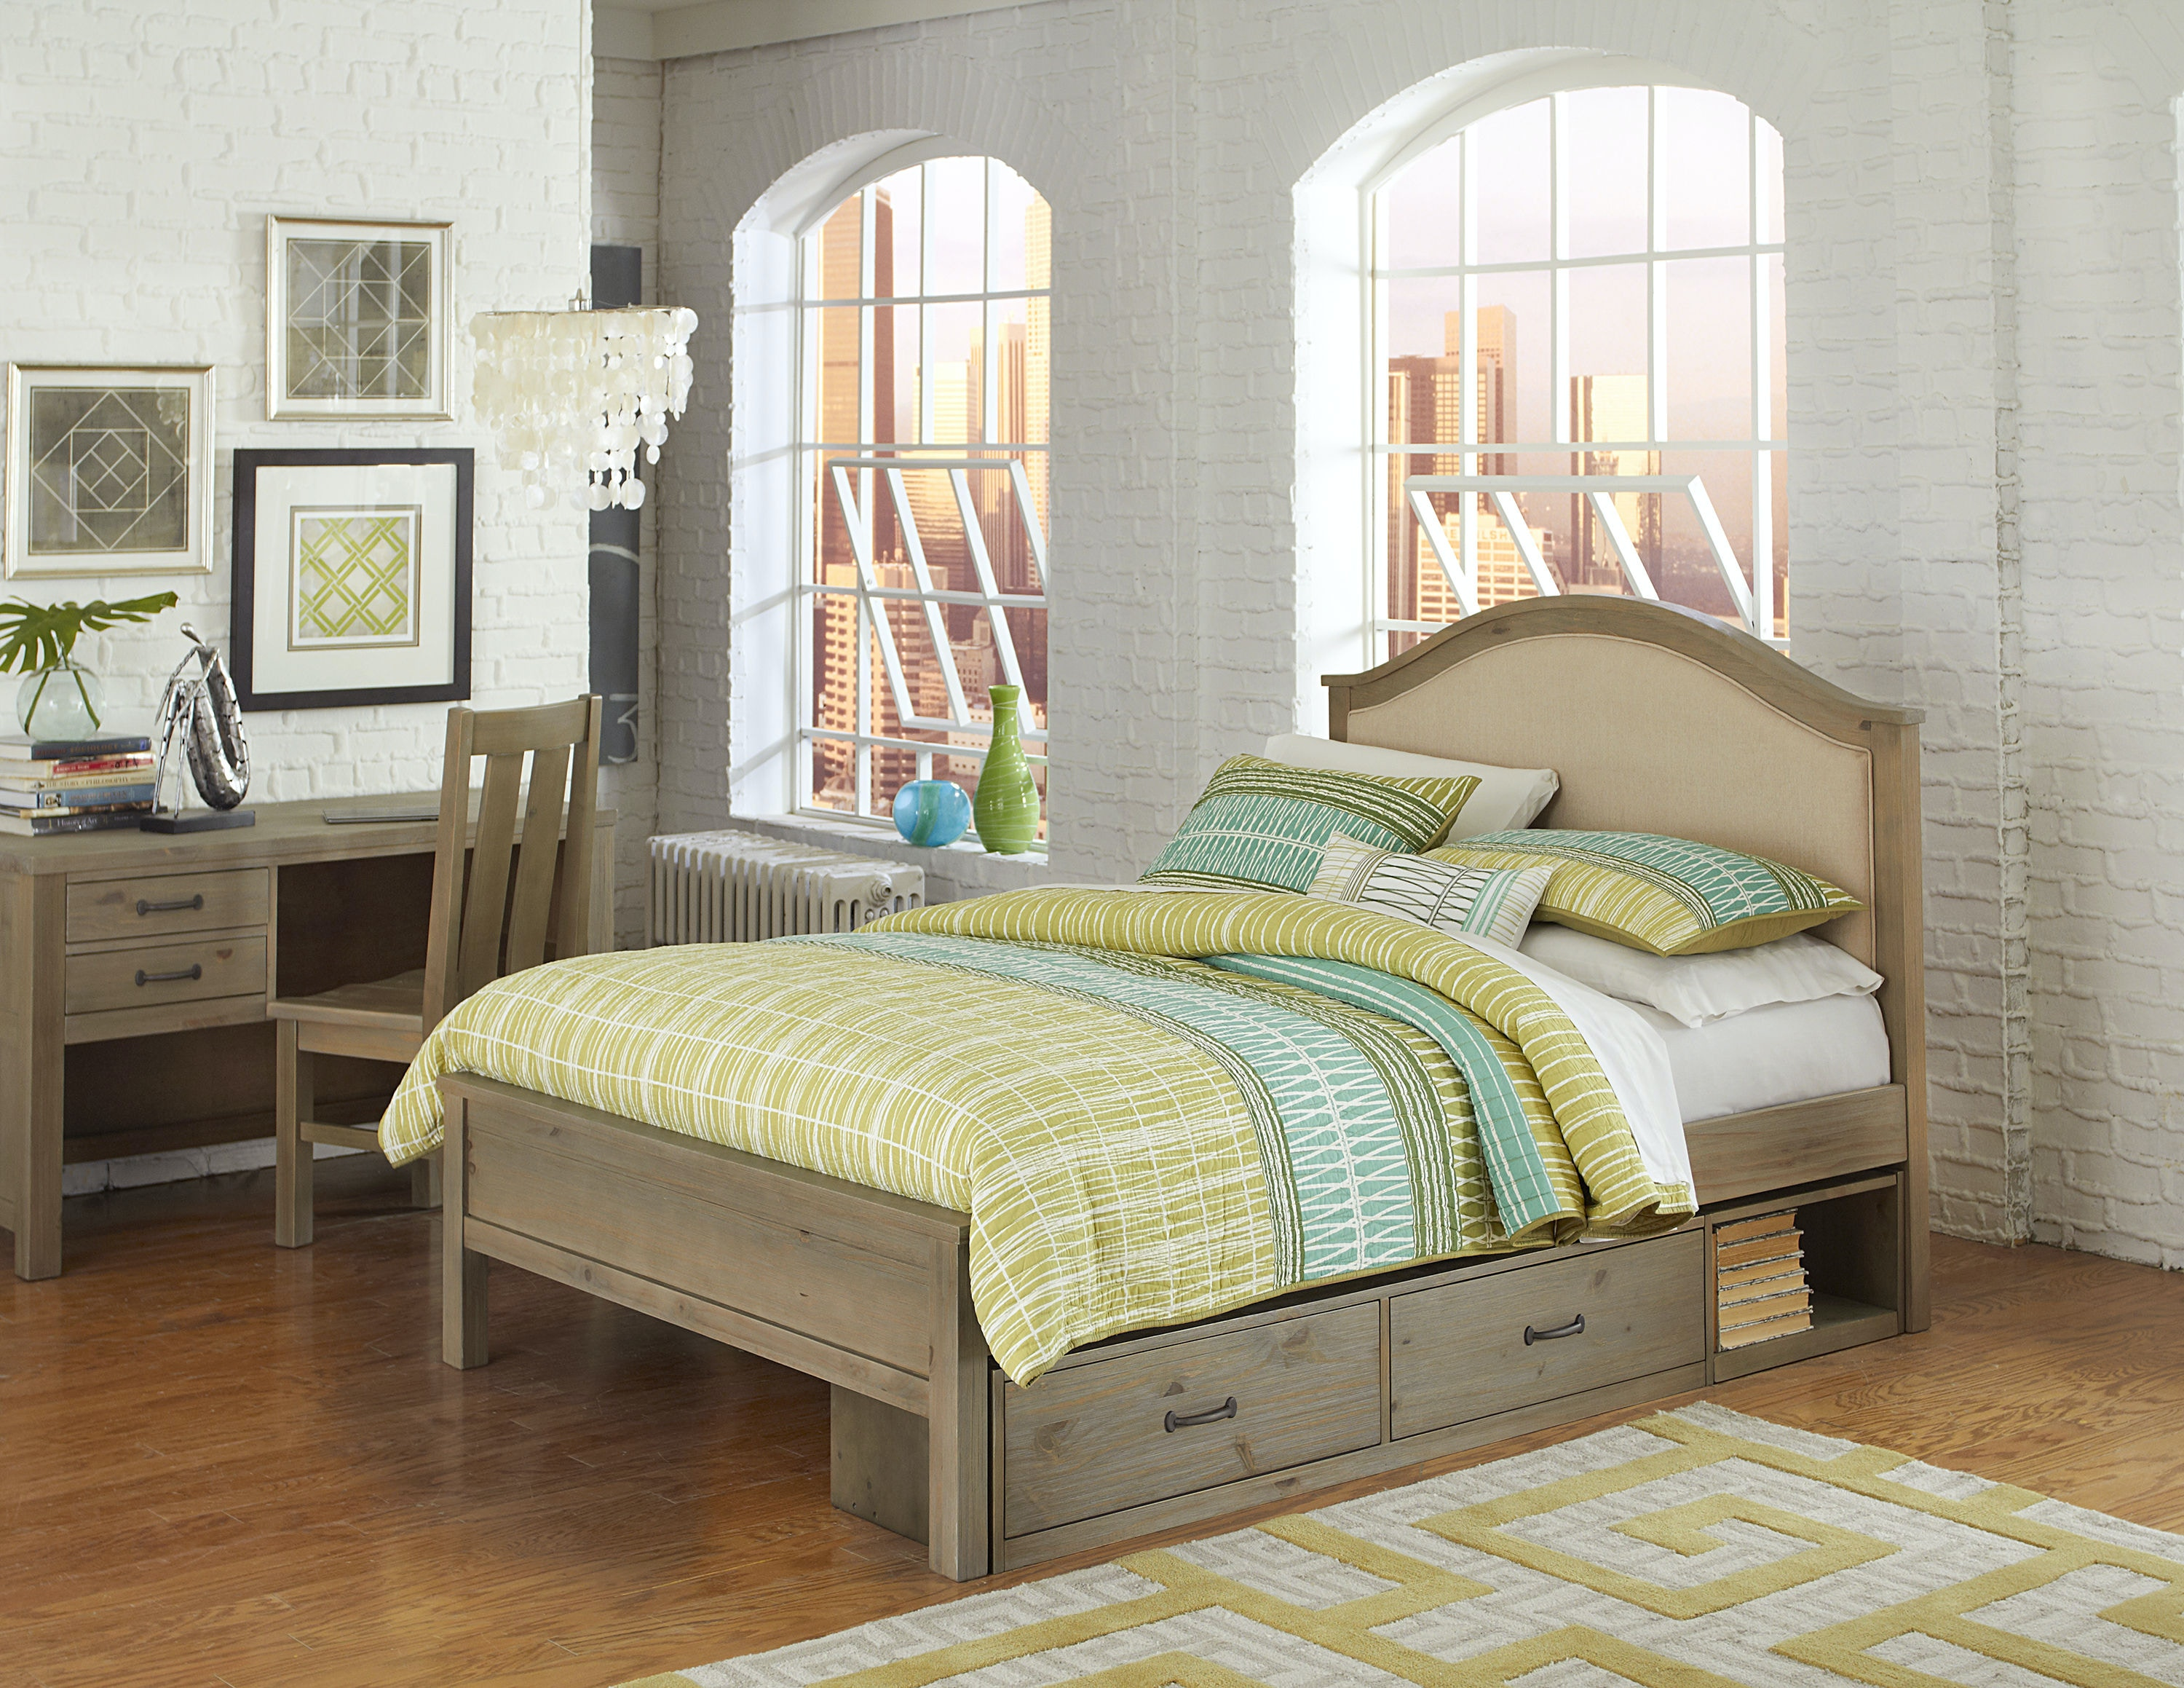 hillsdale kids and teen youth highlands bailey full bed